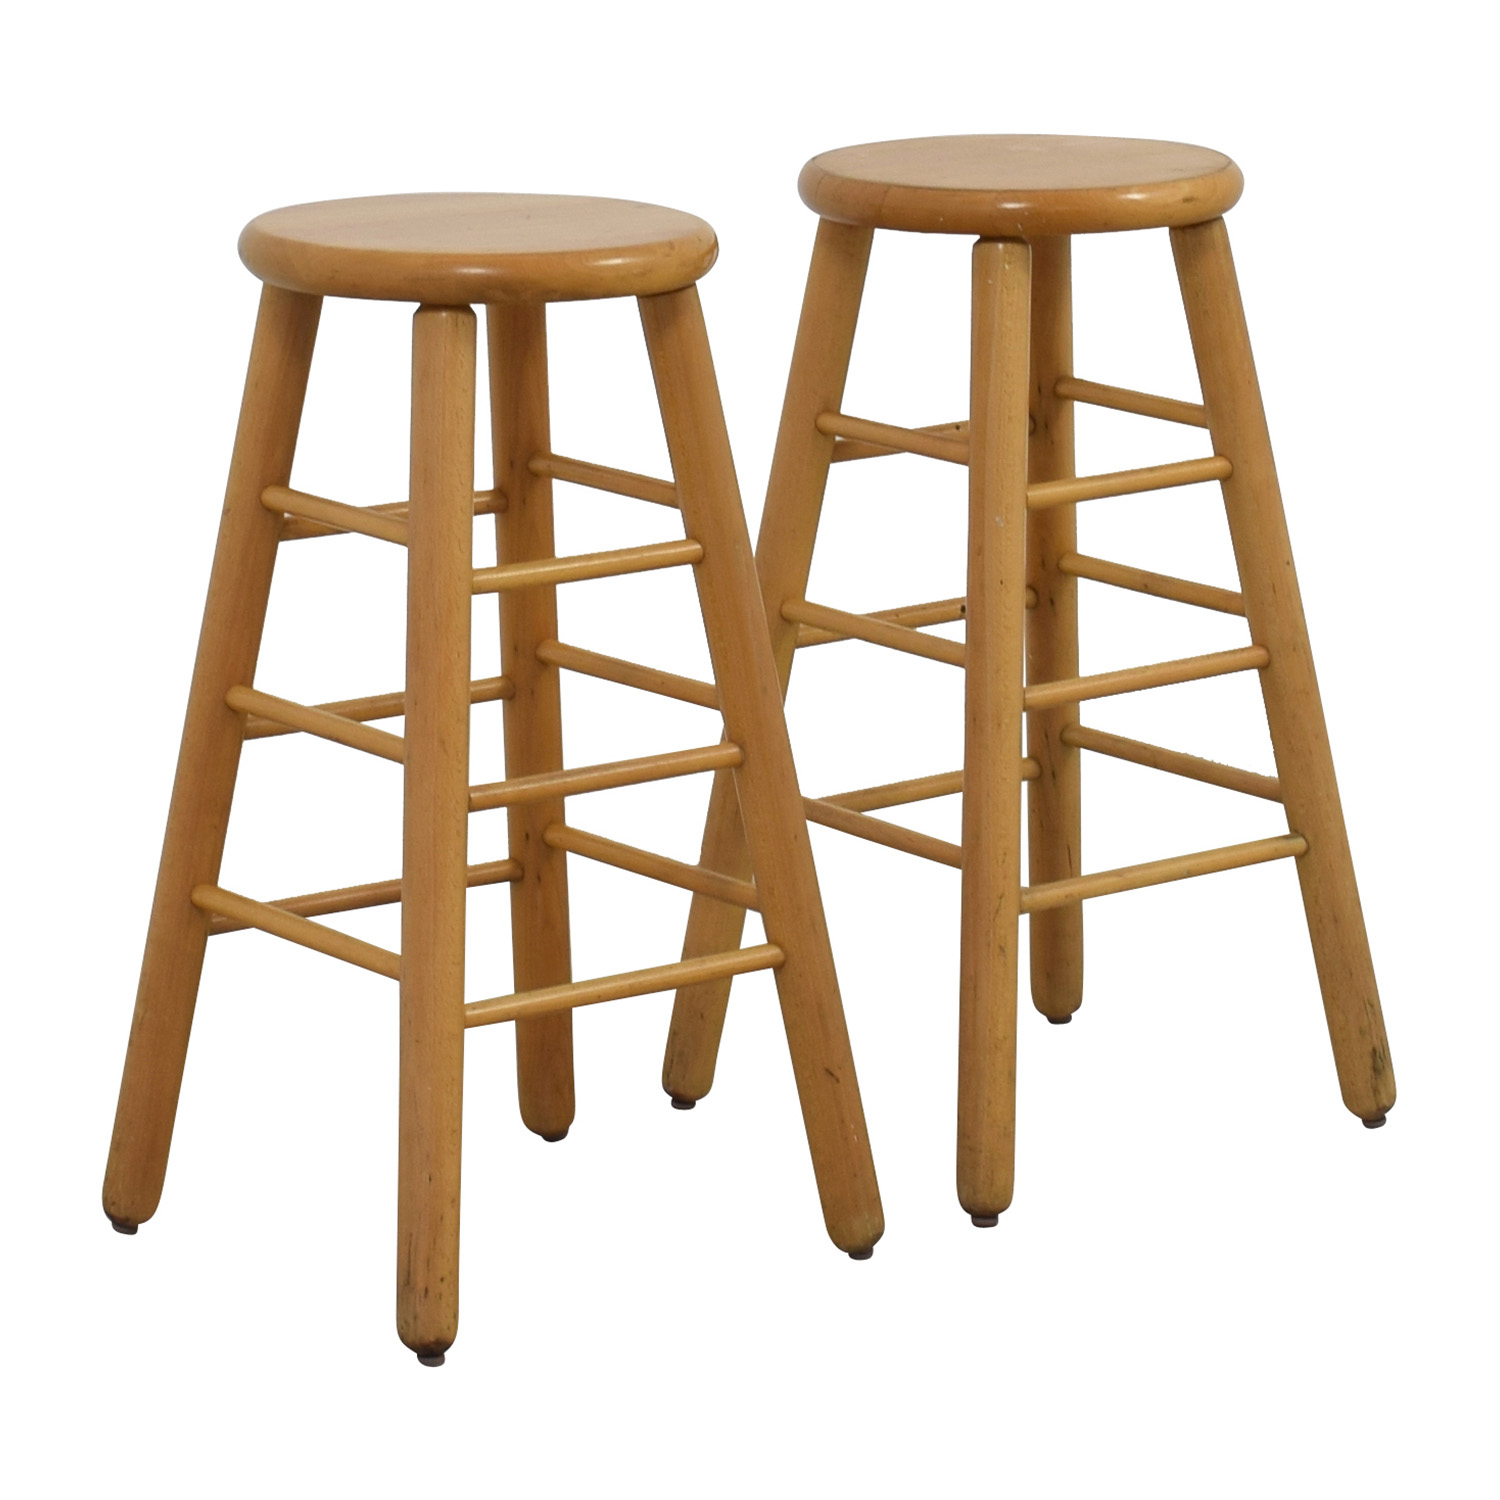 83 Off Wood Bar Stools Chairs